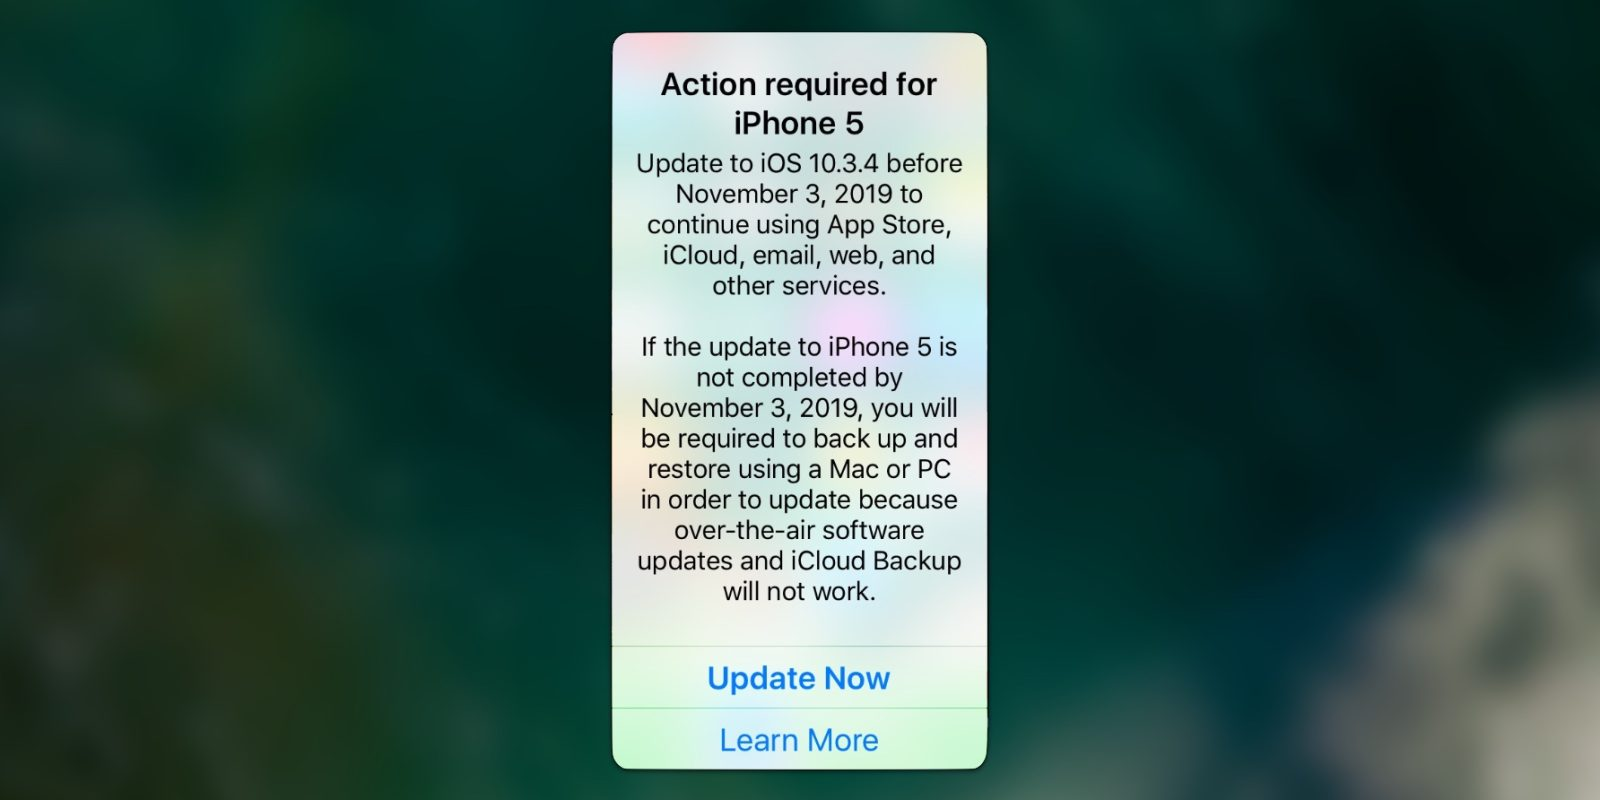 Still using an iPhone 5? iOS 10.3.4 is required to keep your phone working